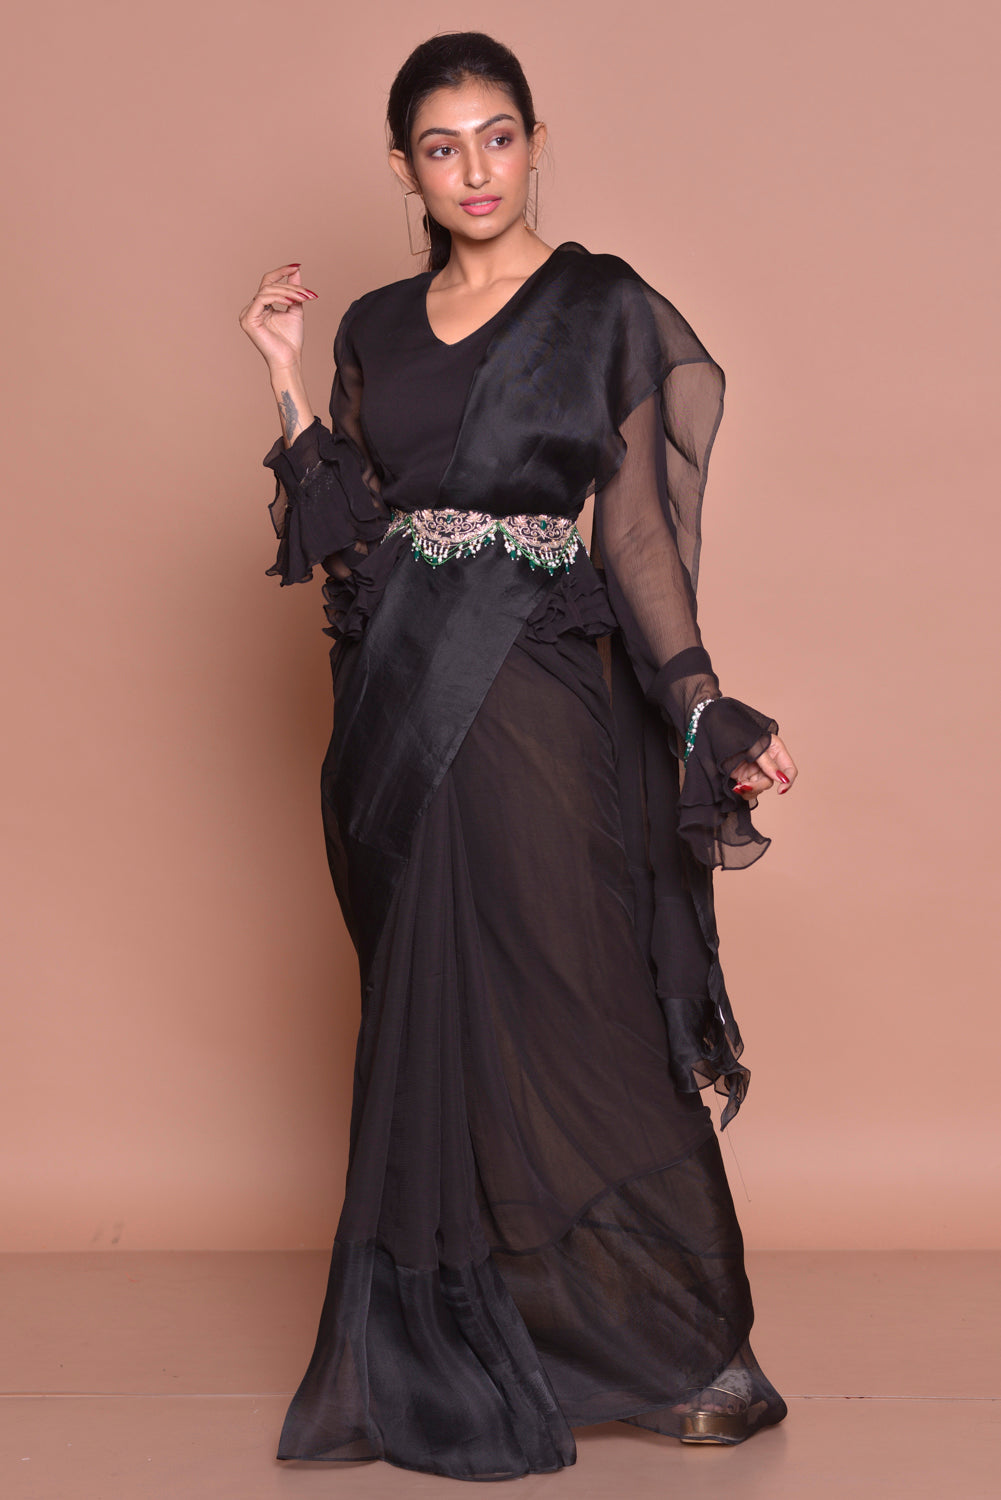 Buy black georgette ruffle saree with belt online in USA with matching sari blouse. Set ethnic fashion goals with exquisite designer sarees with blouse, Banarasi sarees, Kanchipuram saris from Pure Elegance Indian luxury clothing store in USA.-side